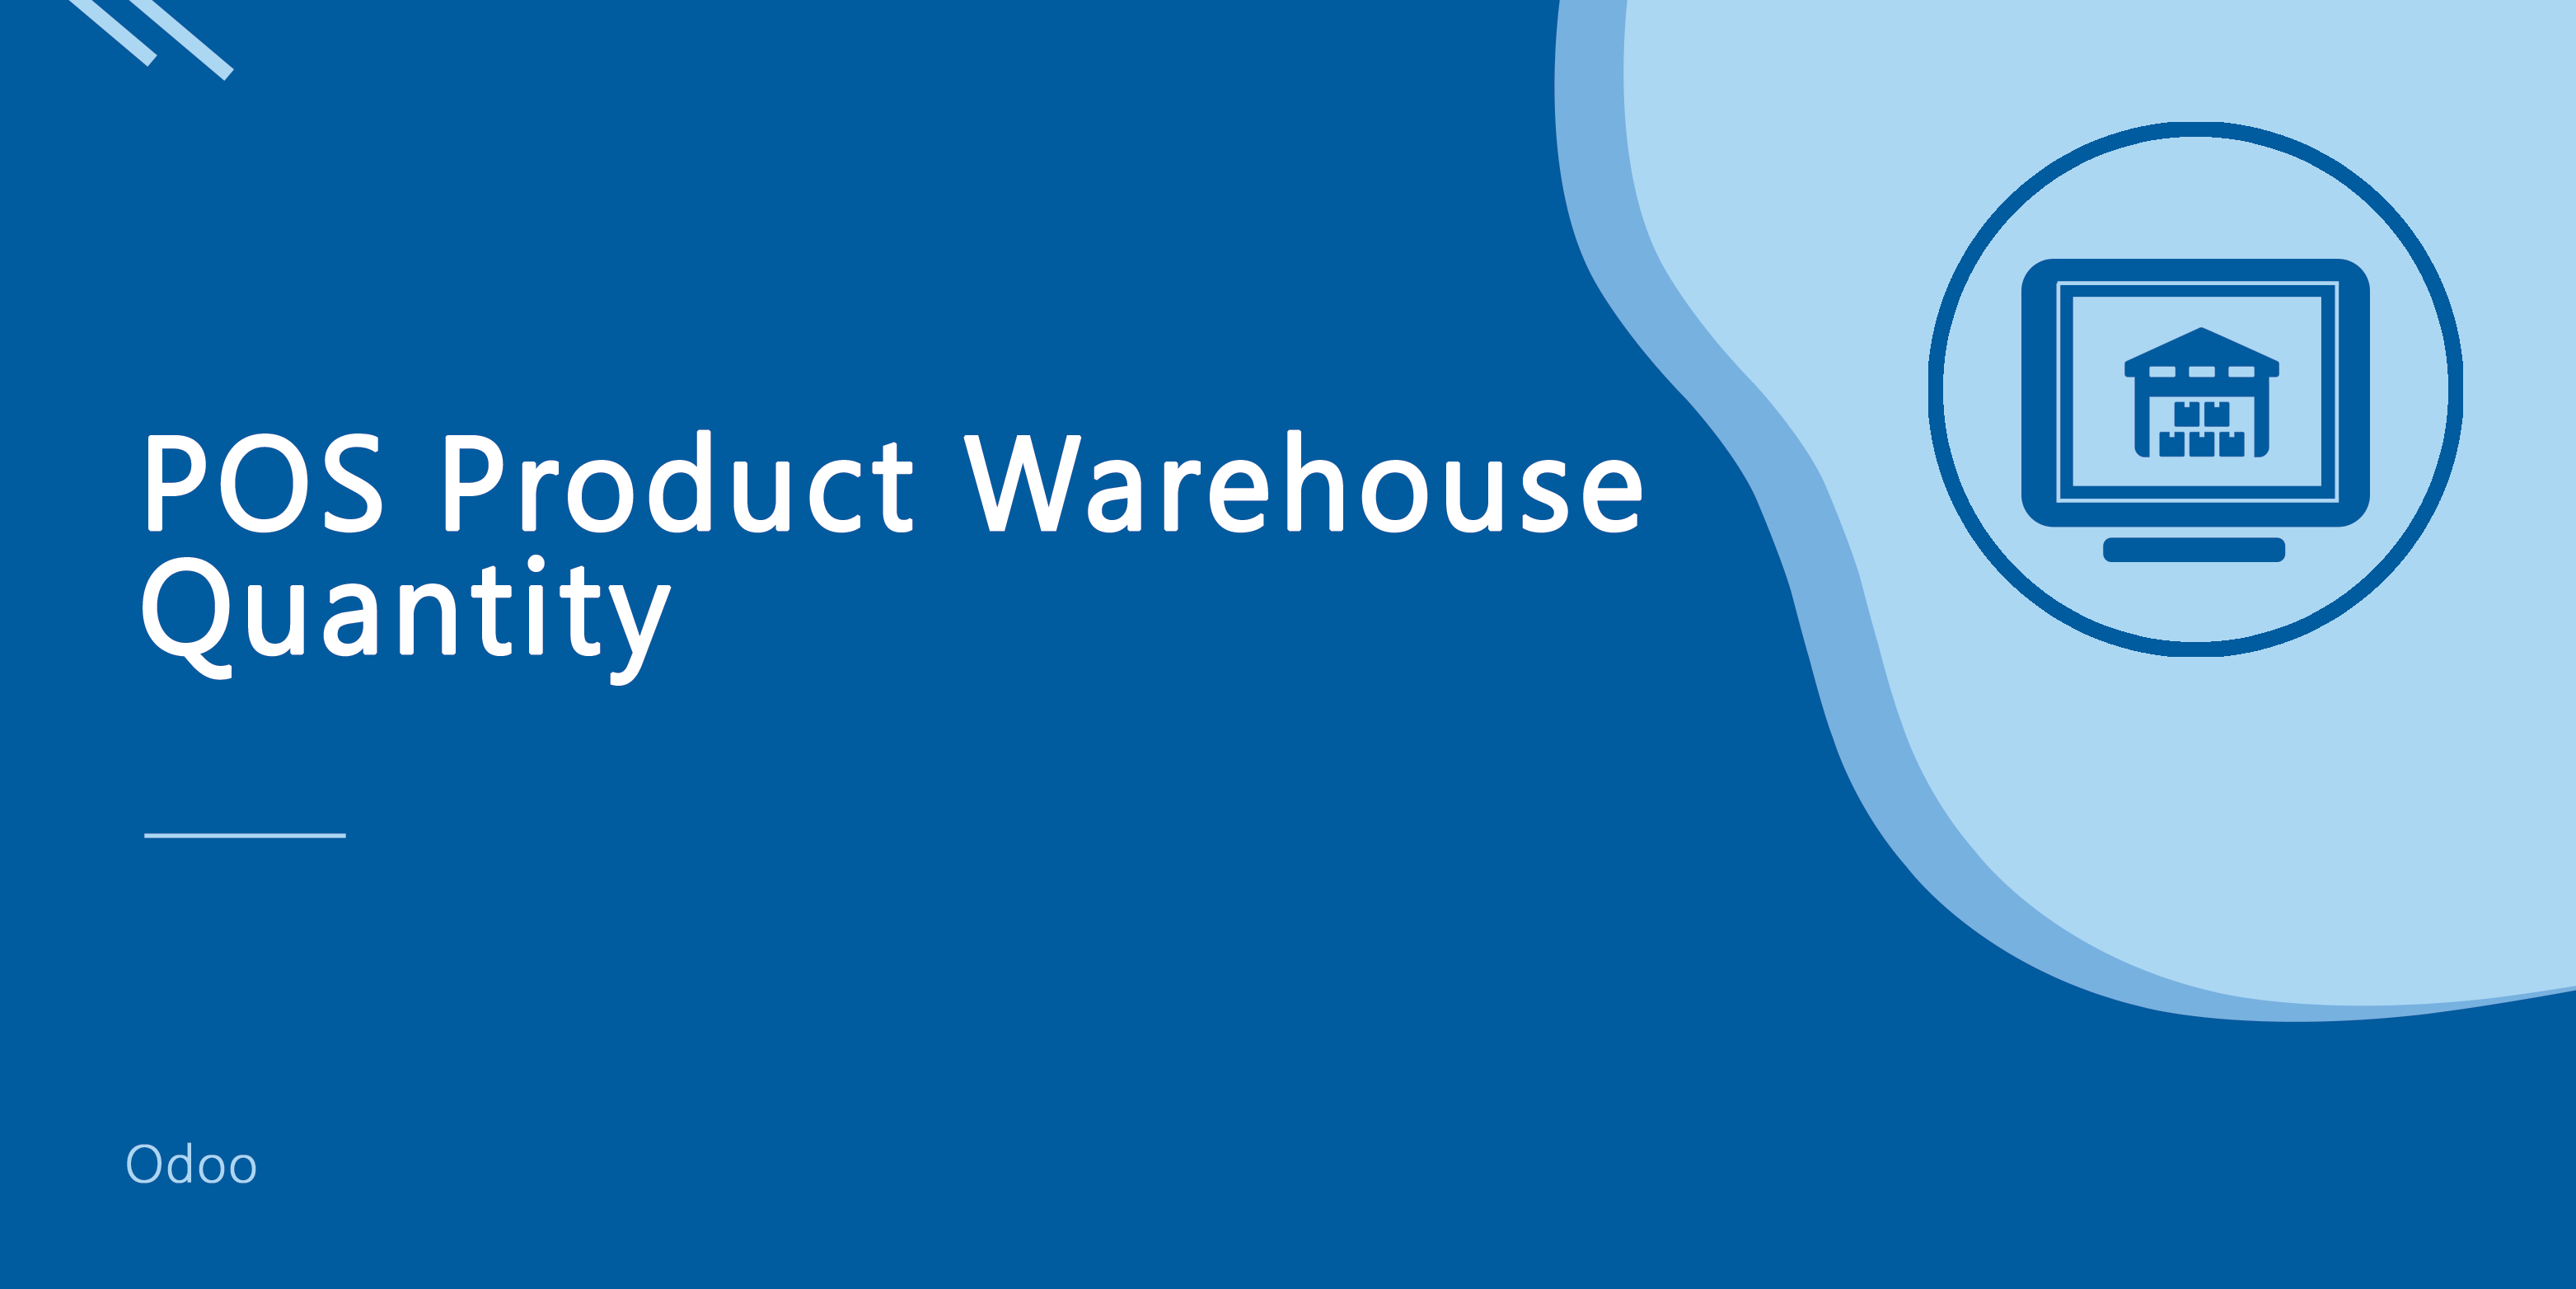 POS Product Warehouse Quantity